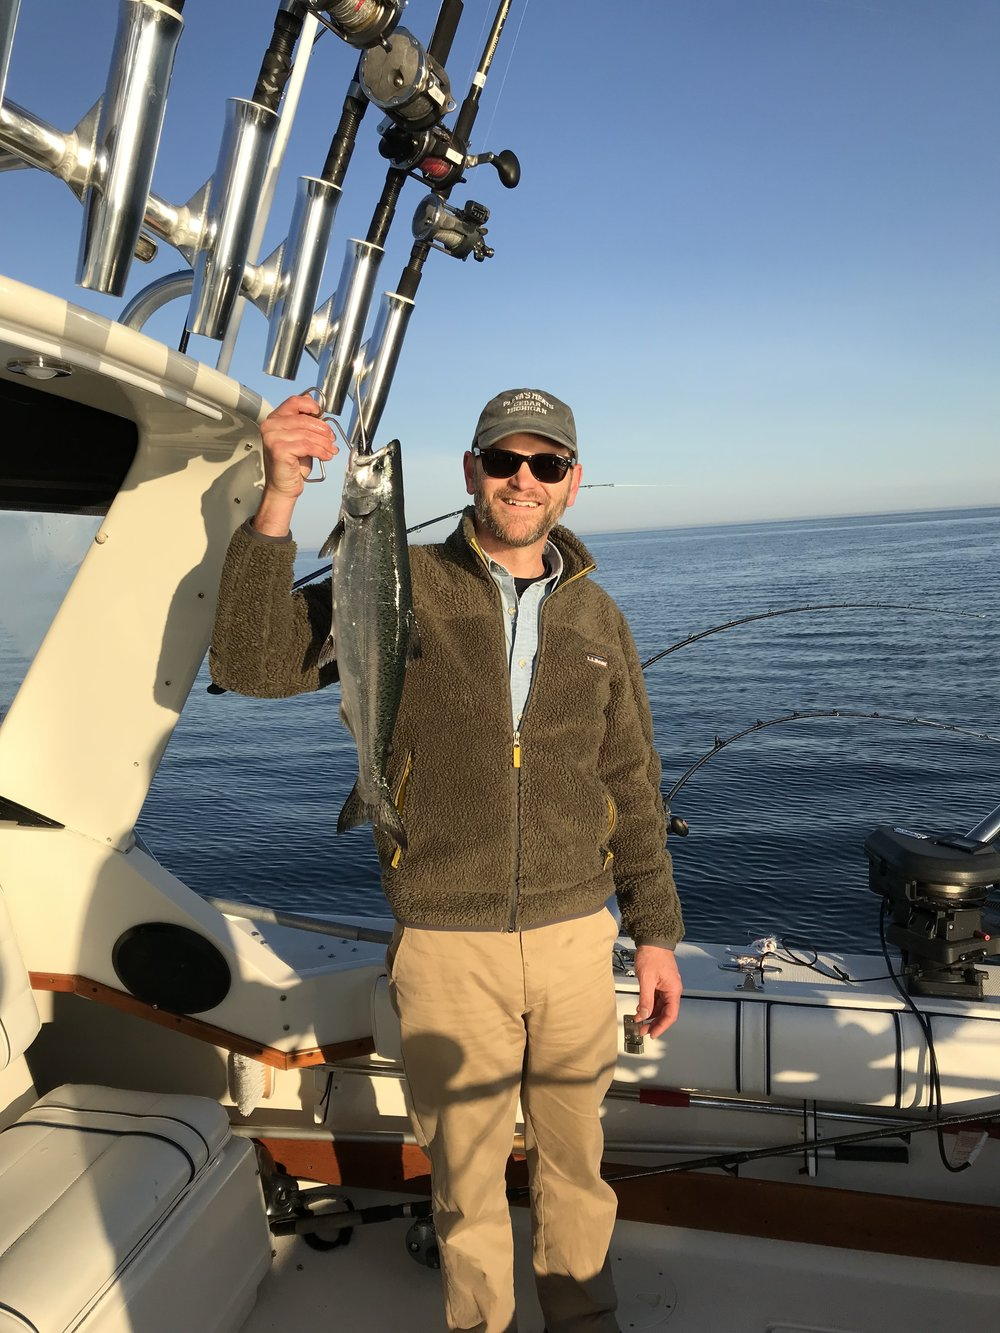 Easily landed, and a great size chinook for table fare.